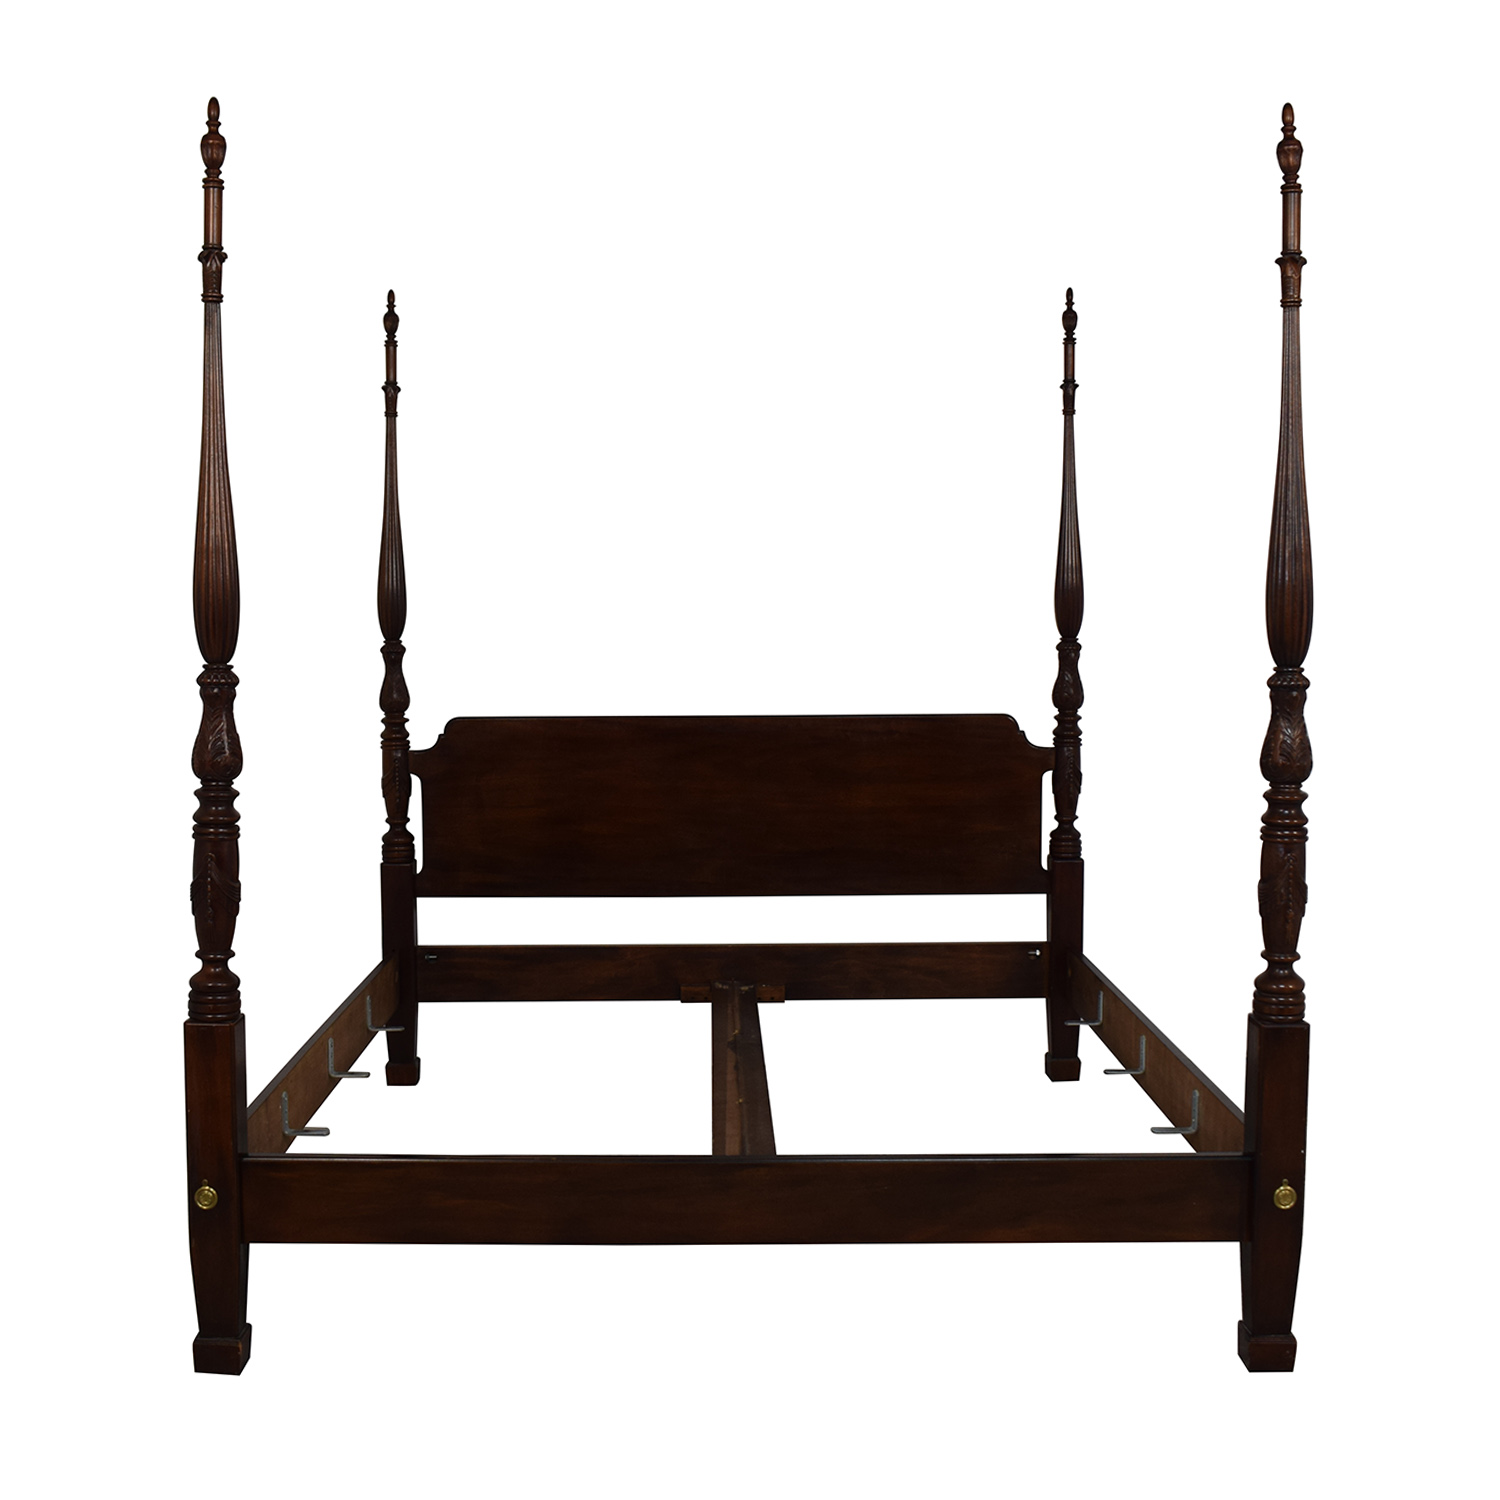 buy Henredon Furniture Henredon Furniture King Bed Frame online